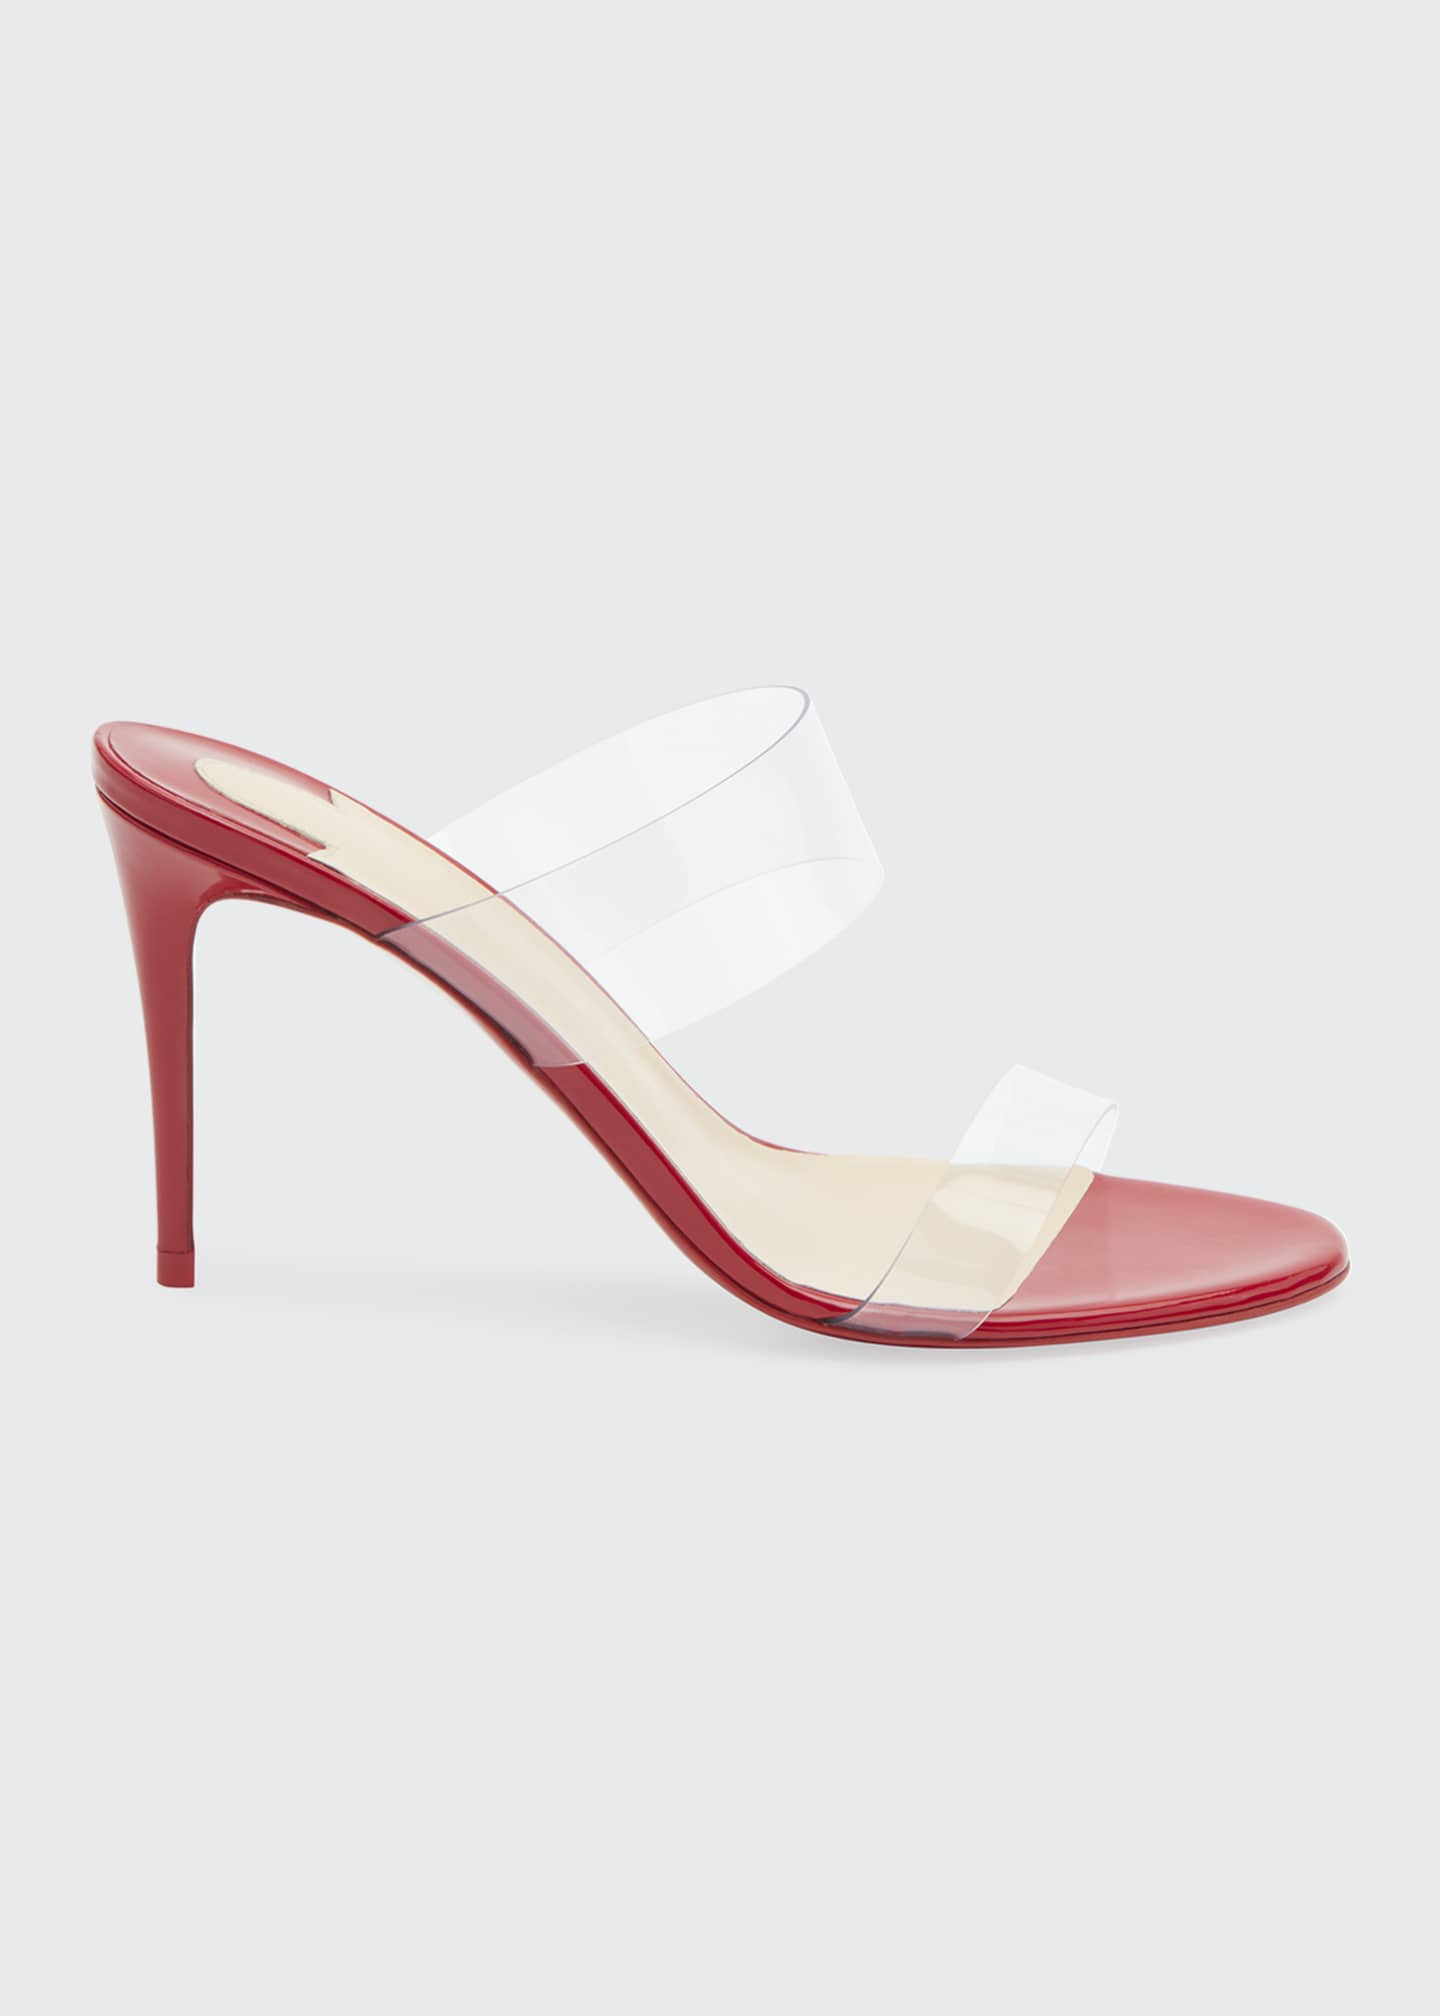 Christian Louboutin Just Nothing Illusion Red Sole Sandals,